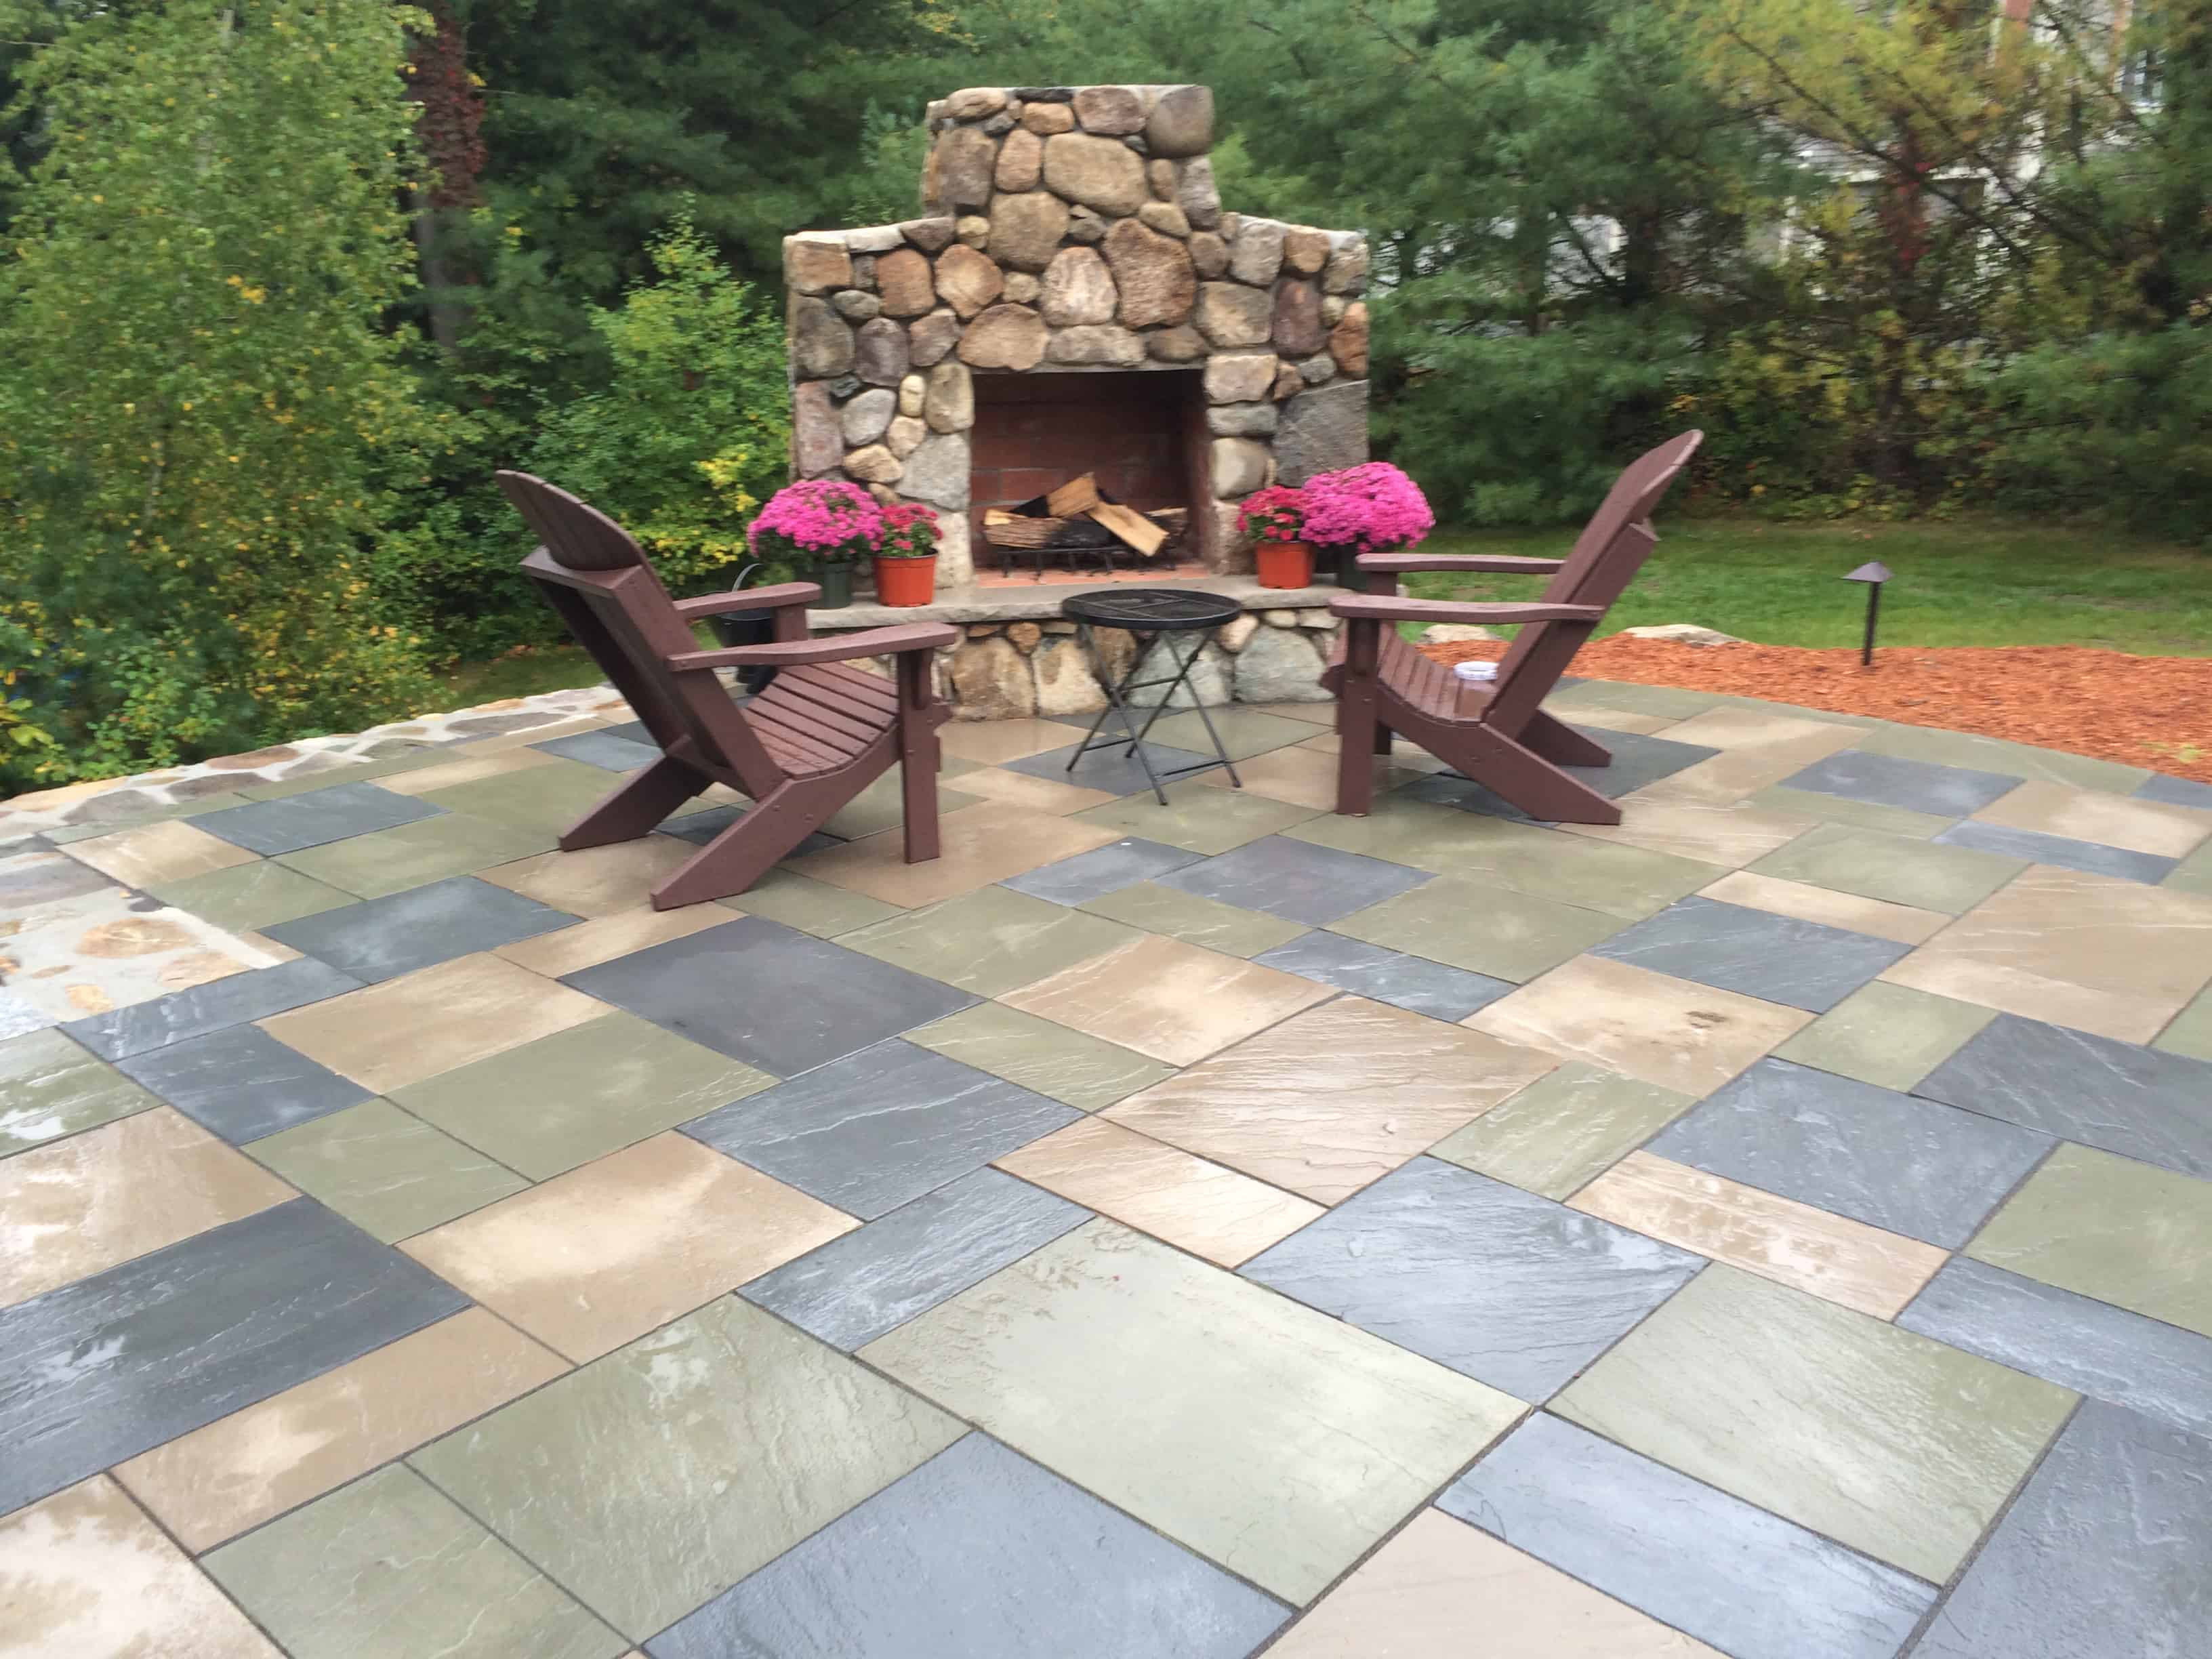 Outdoor Fireplace and Patio with Landscaping